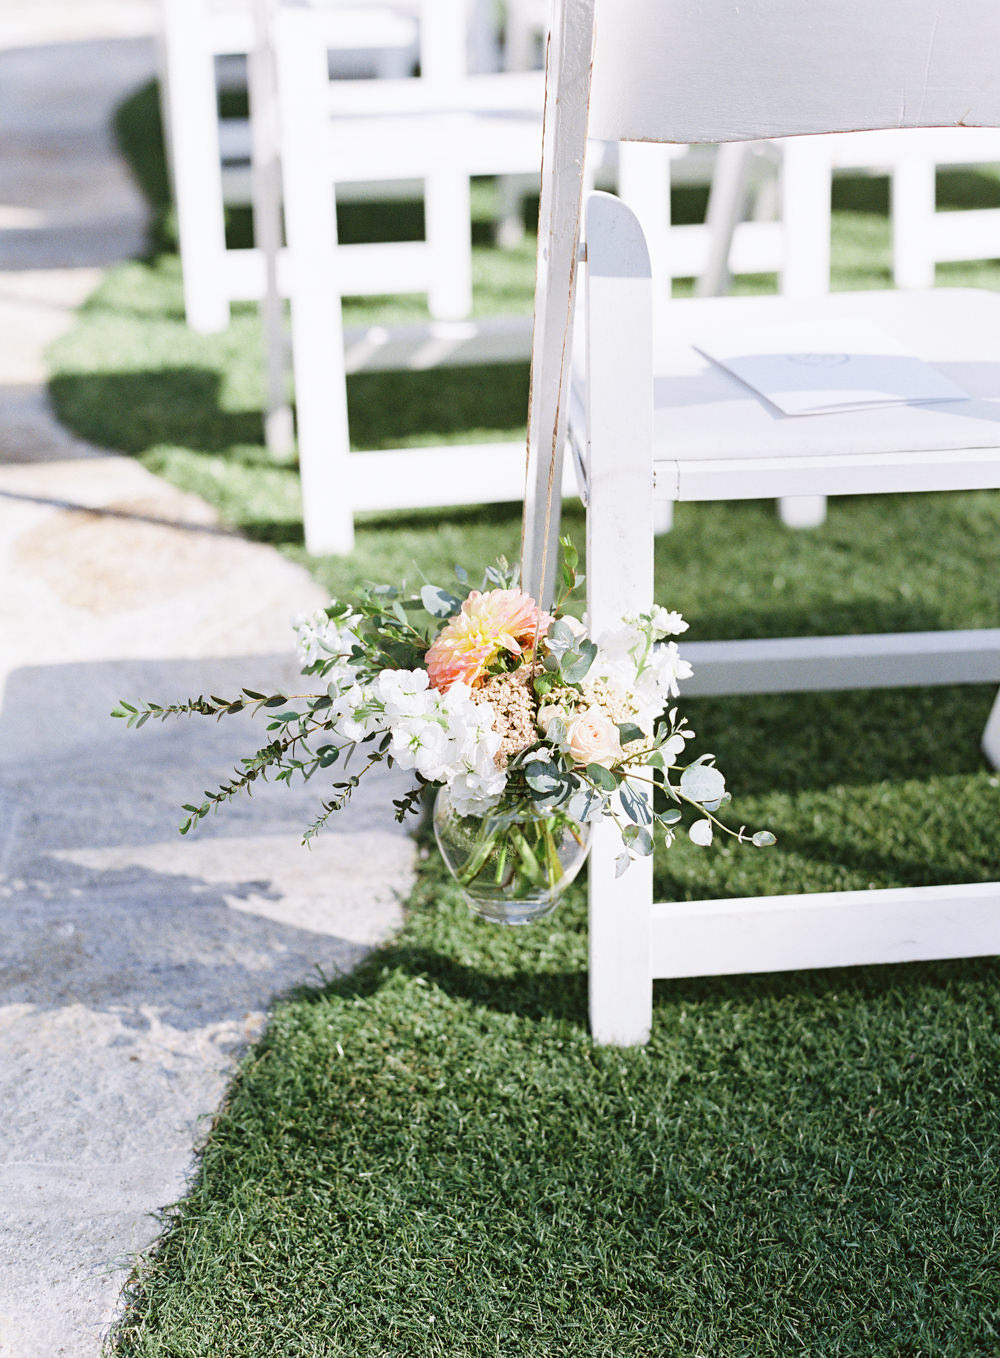 RomanticGardenWedding_WhiskersandWillow_063.jpg